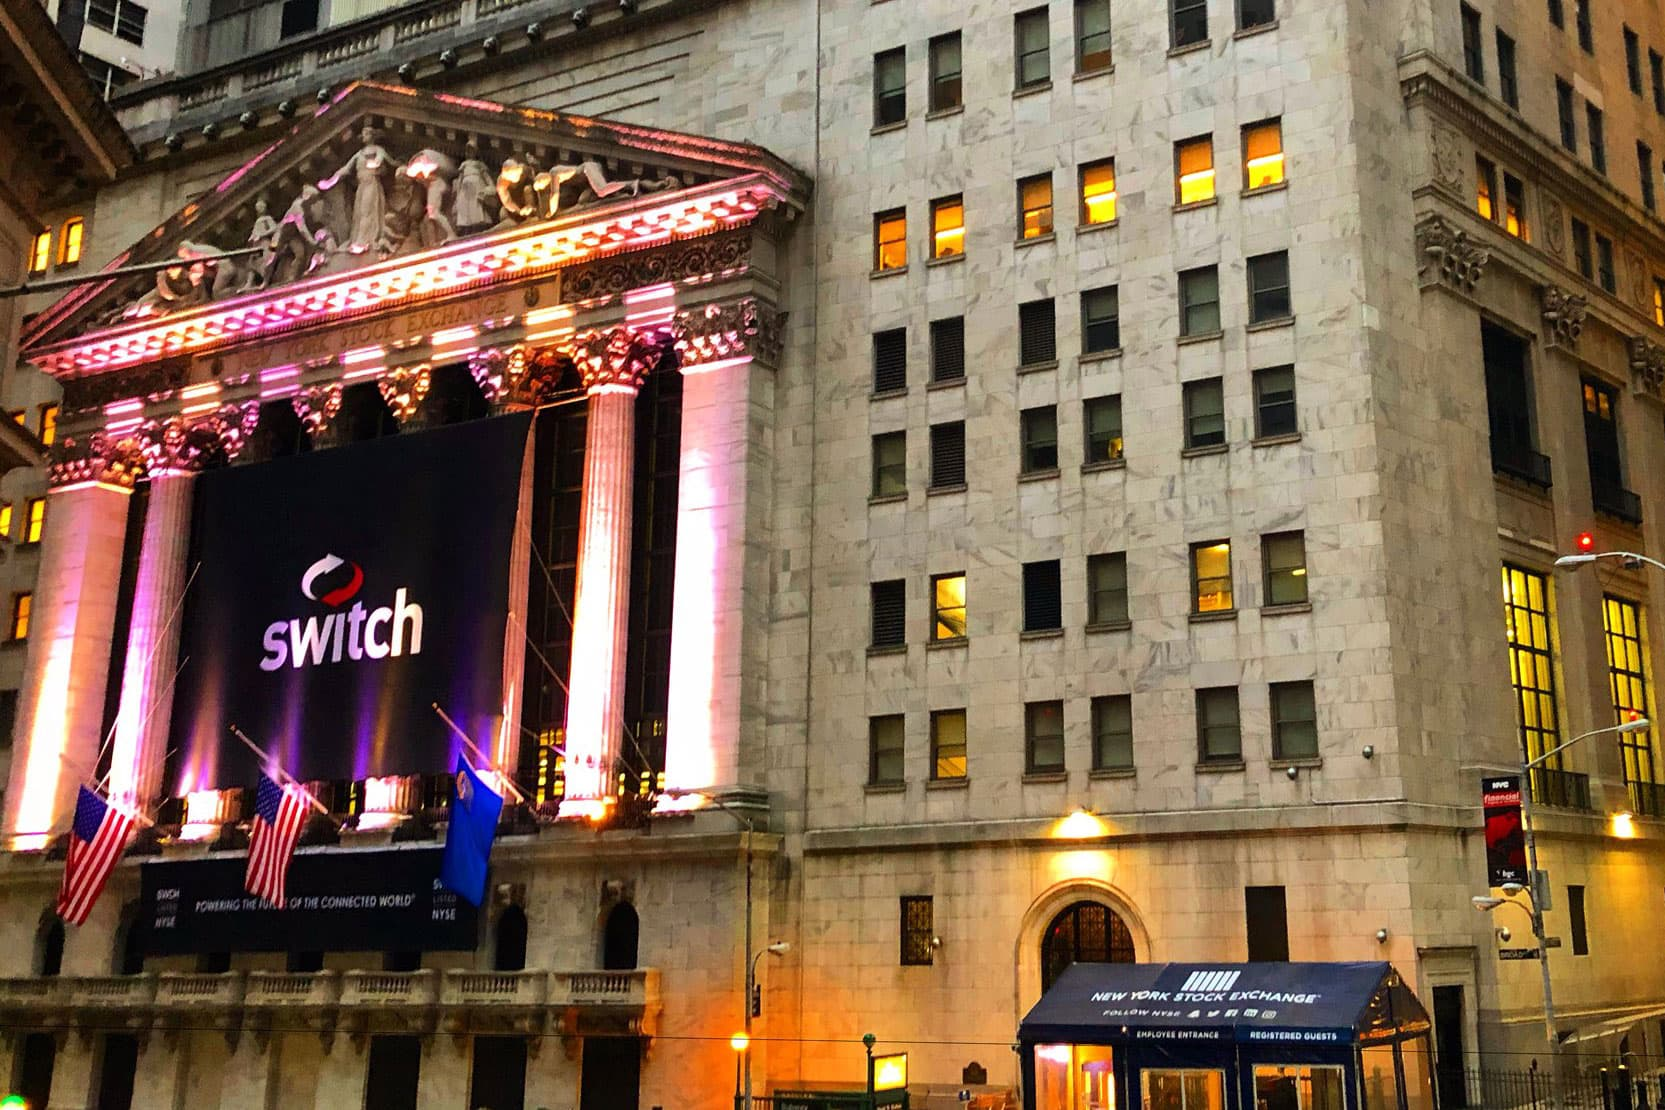 Switch swch ipo stock up in opening day trading biocorpaavc Choice Image